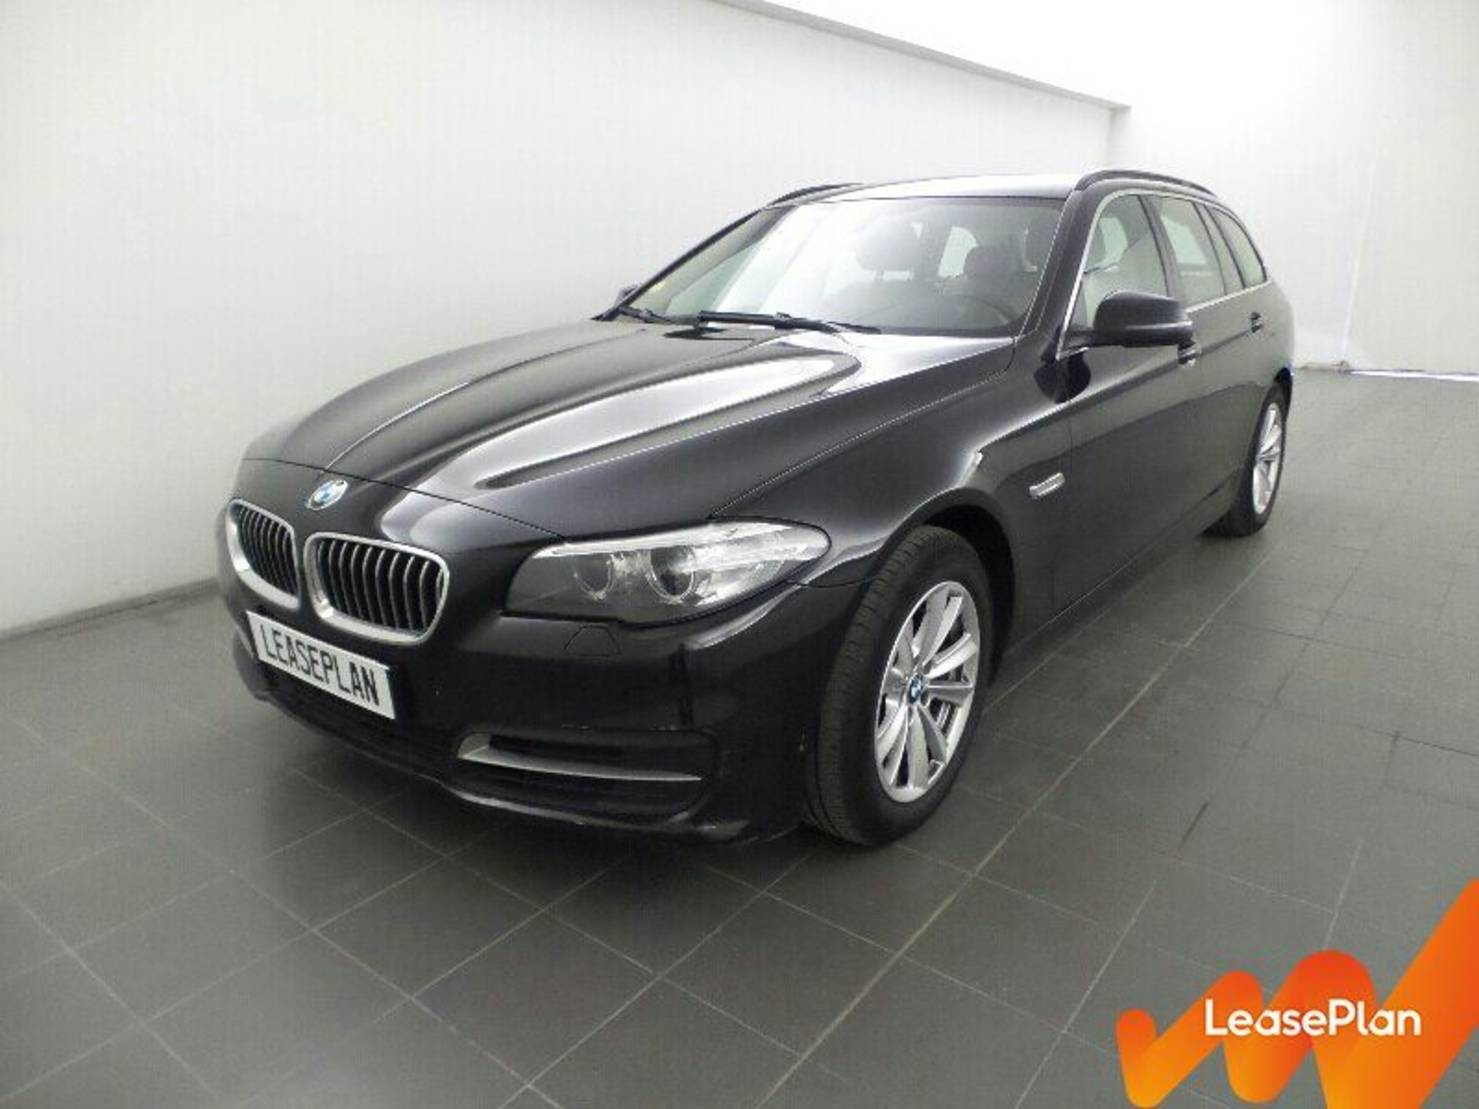 BMW 5 Serie Touring 518d 143 ch, Lounge Plus detail1